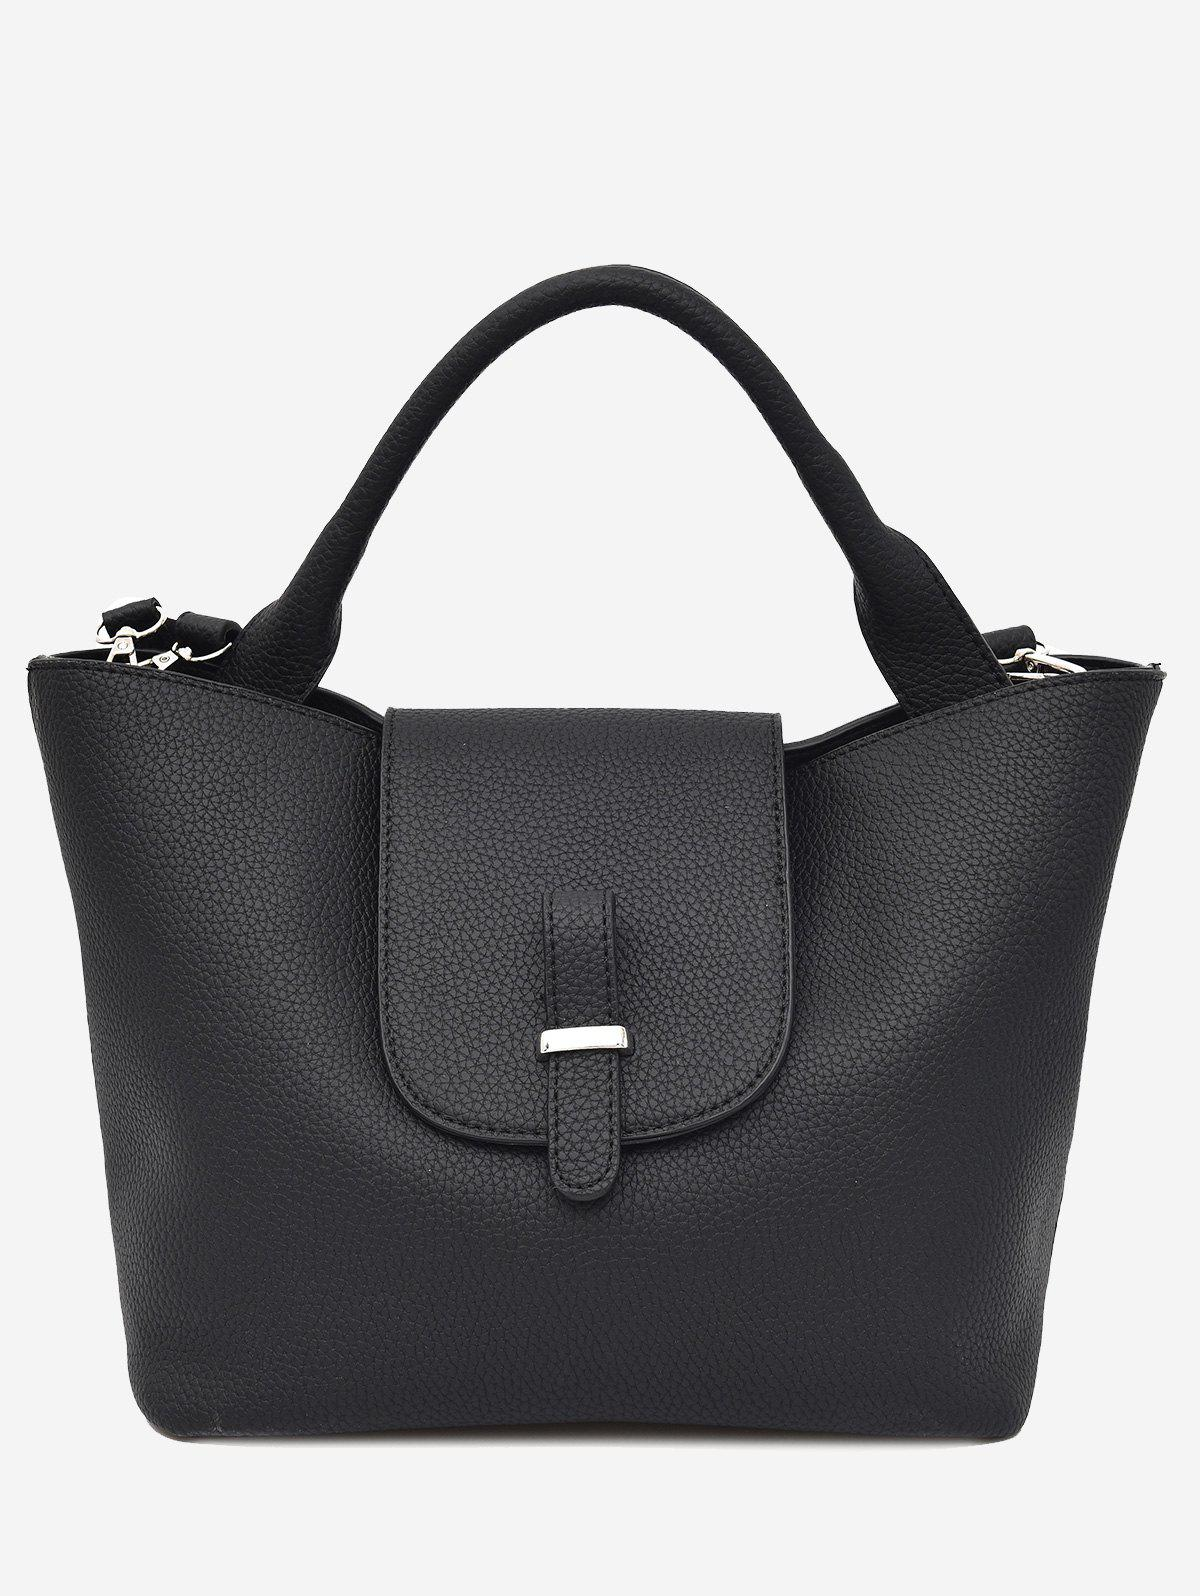 Top Handle Faux Leather Handbag - BLACK